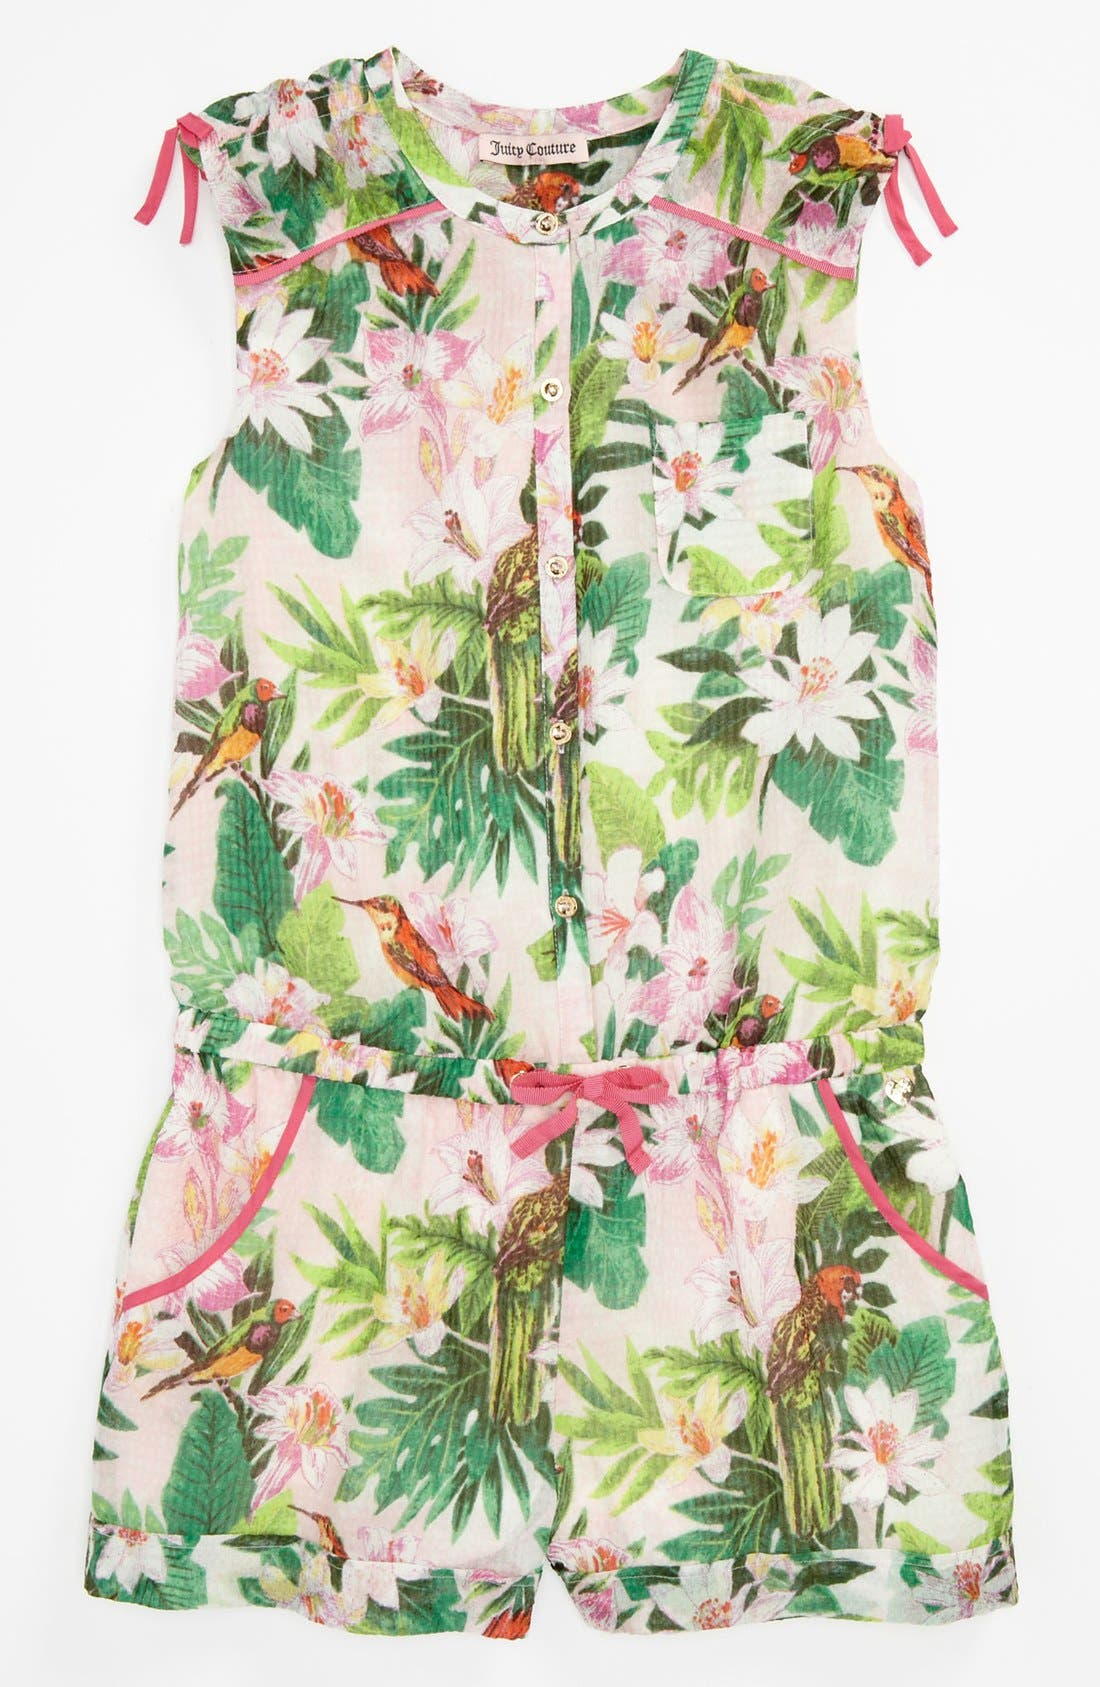 Main Image - Juicy Couture 'Birds of Paradise' Romper (Little Girls & Big Girls)